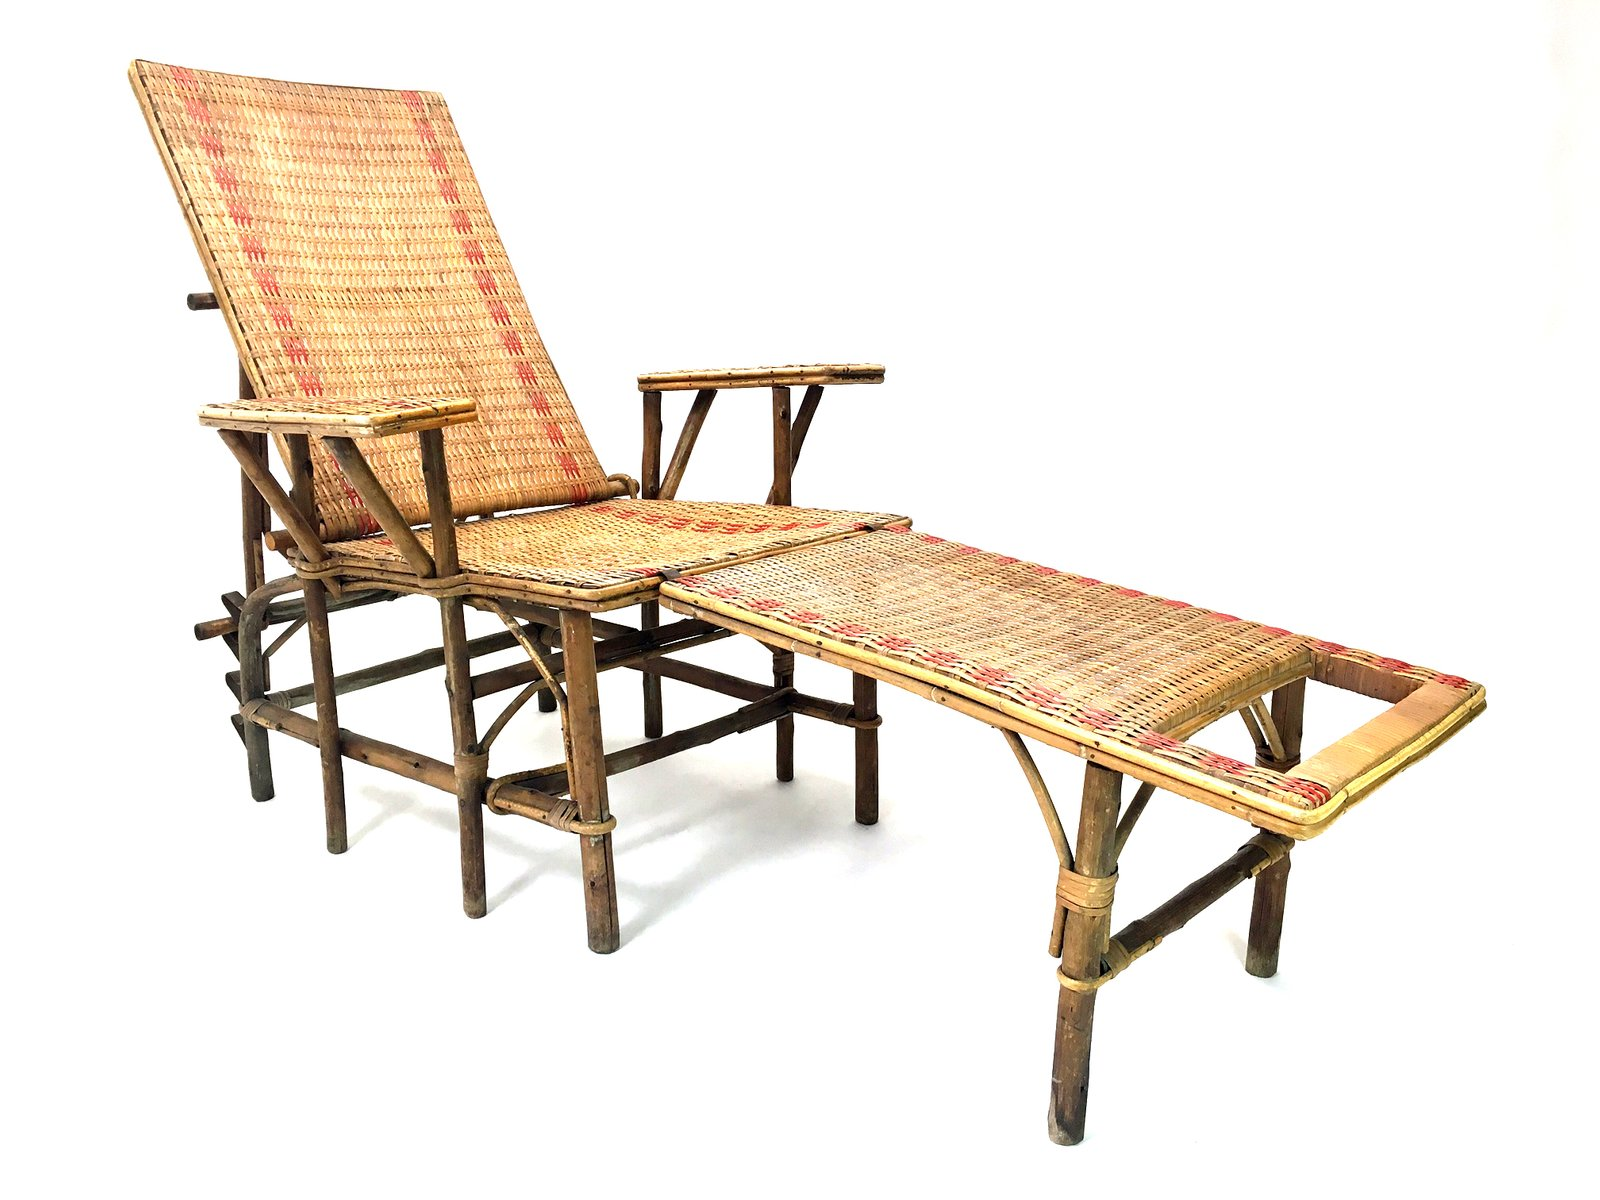 French Wicker And Bamboo Chaise Longue with Footrest 1920s for